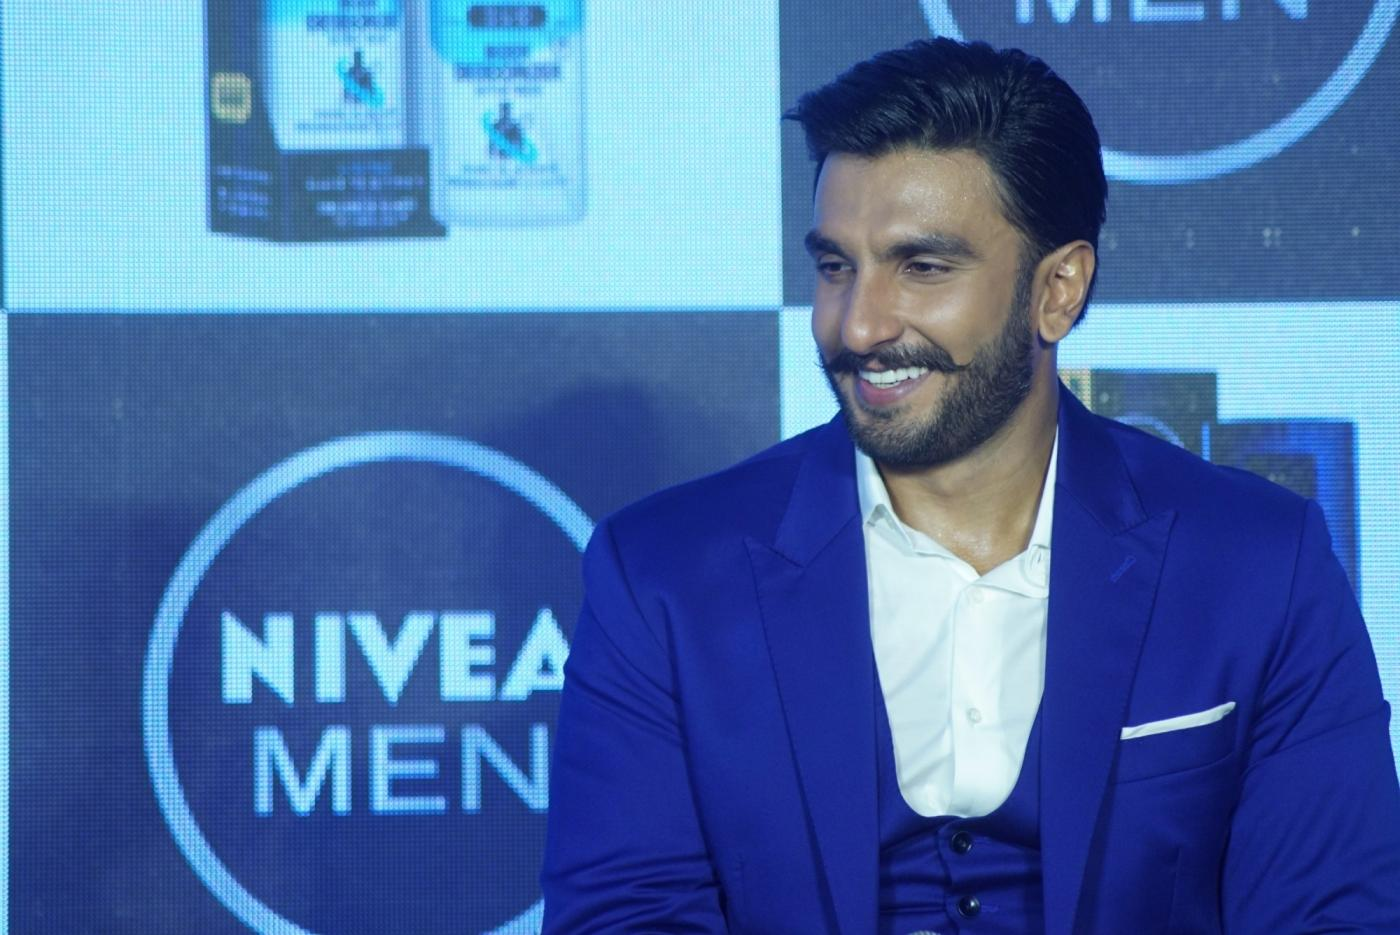 Mumbai: Actor Ranveer Singh during the launch of a product in Mumbai on Aug 4, 2018. (Photo: IANS) by .